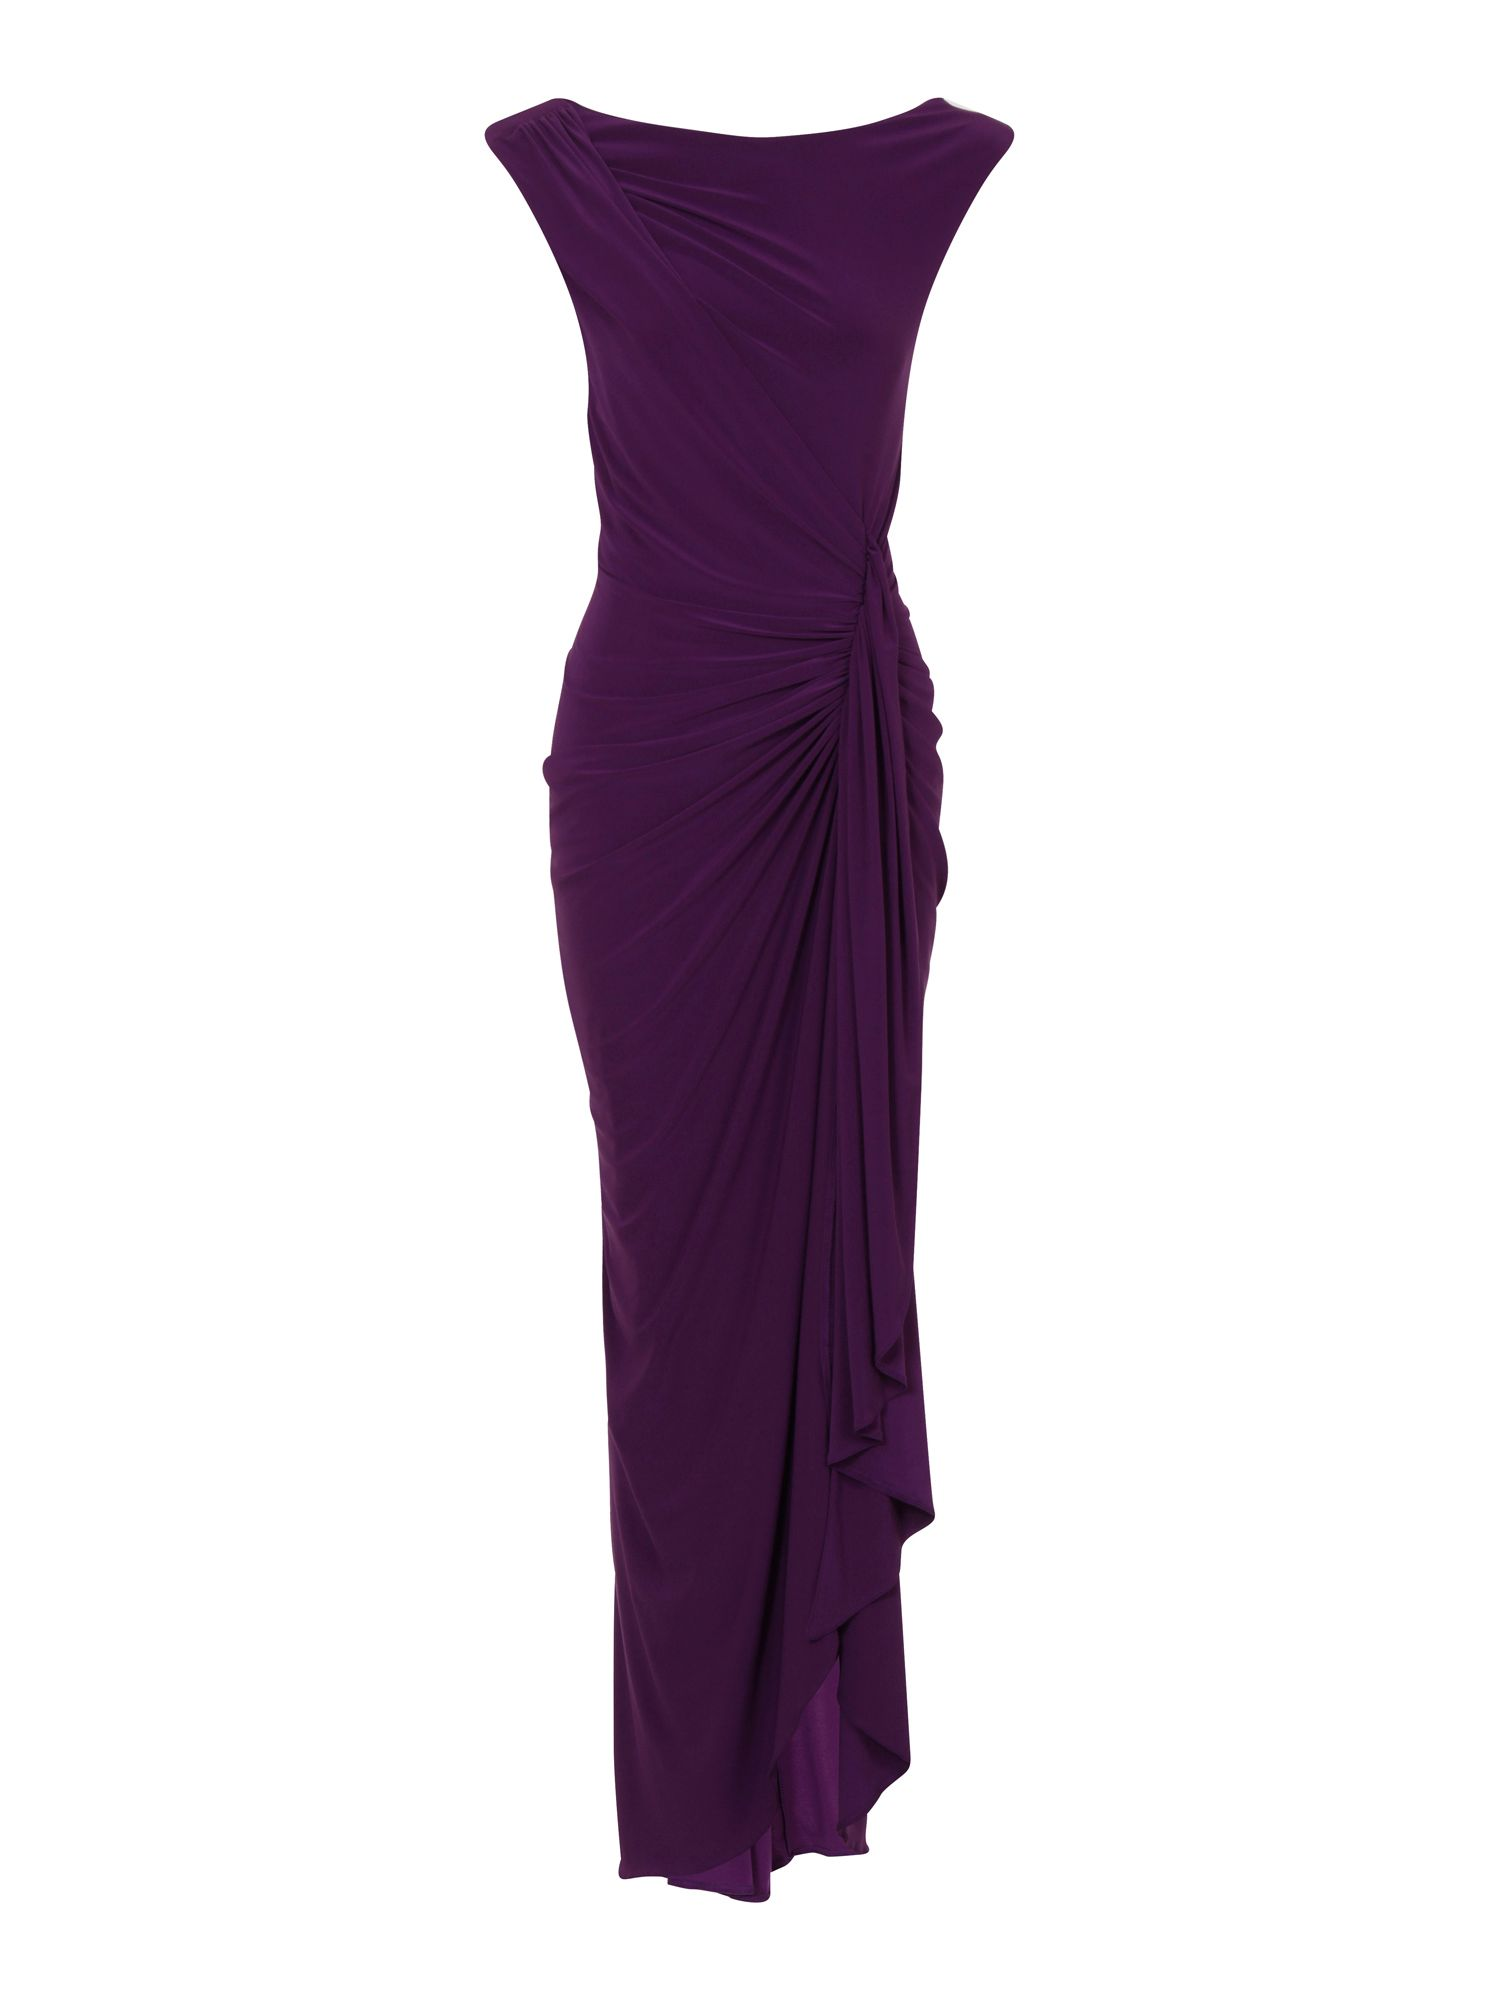 HotSquash Grecian Maxi Dress in Clever Fabric, Purple